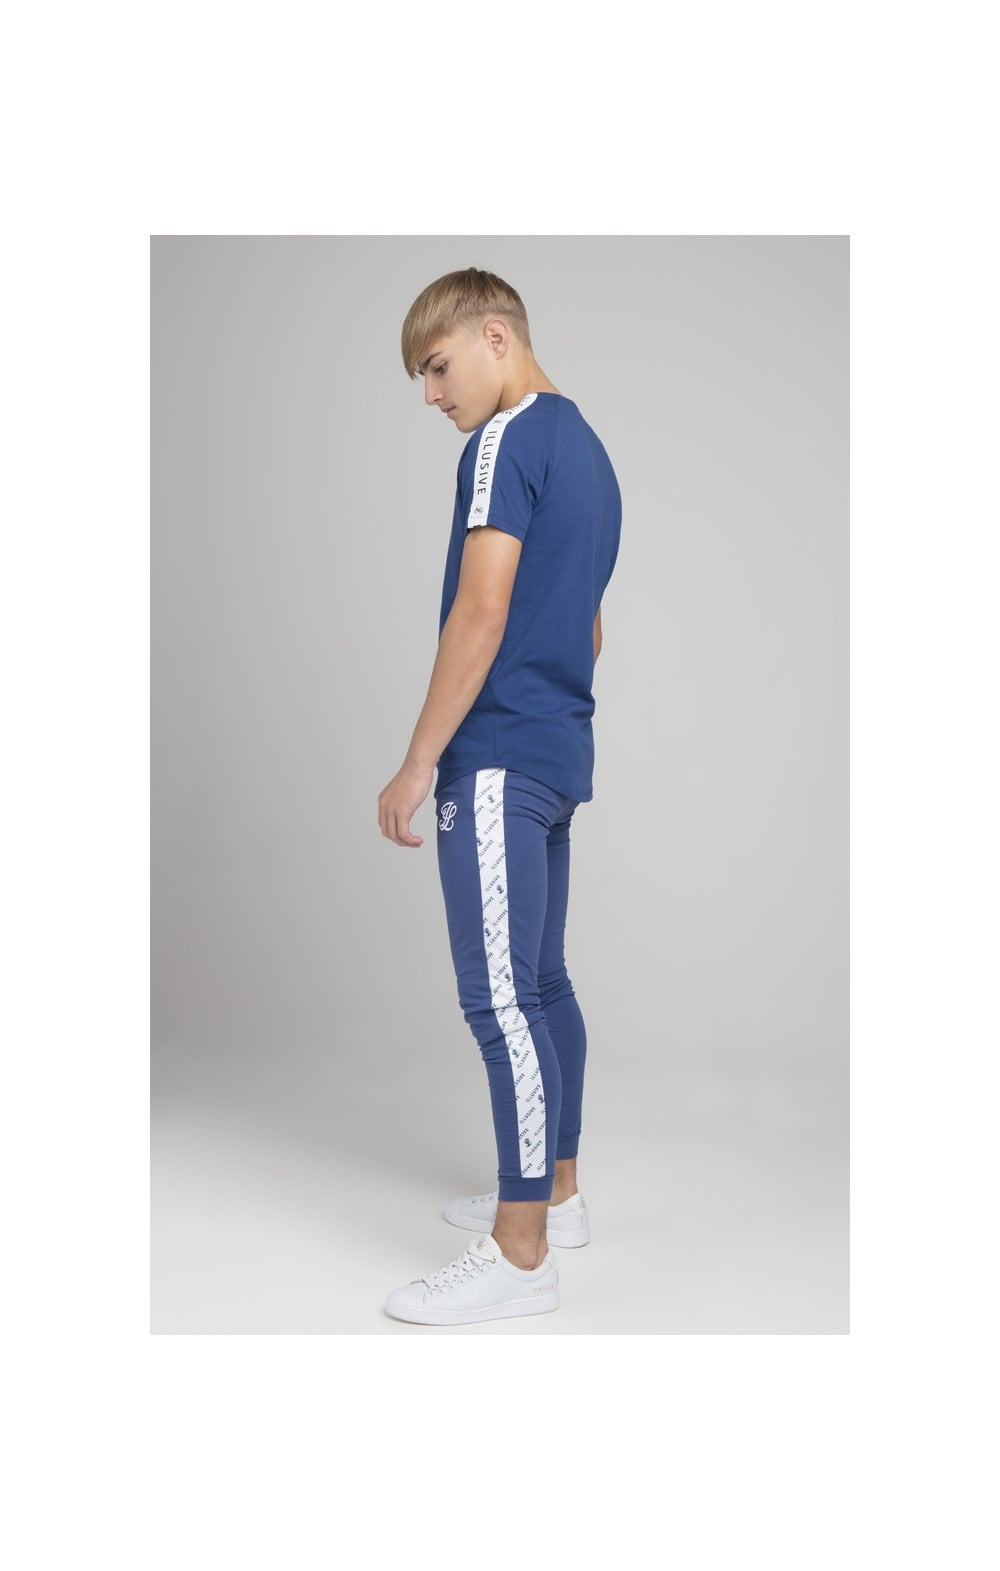 Illusive London Taped Core Tee - Royal Blue (4)